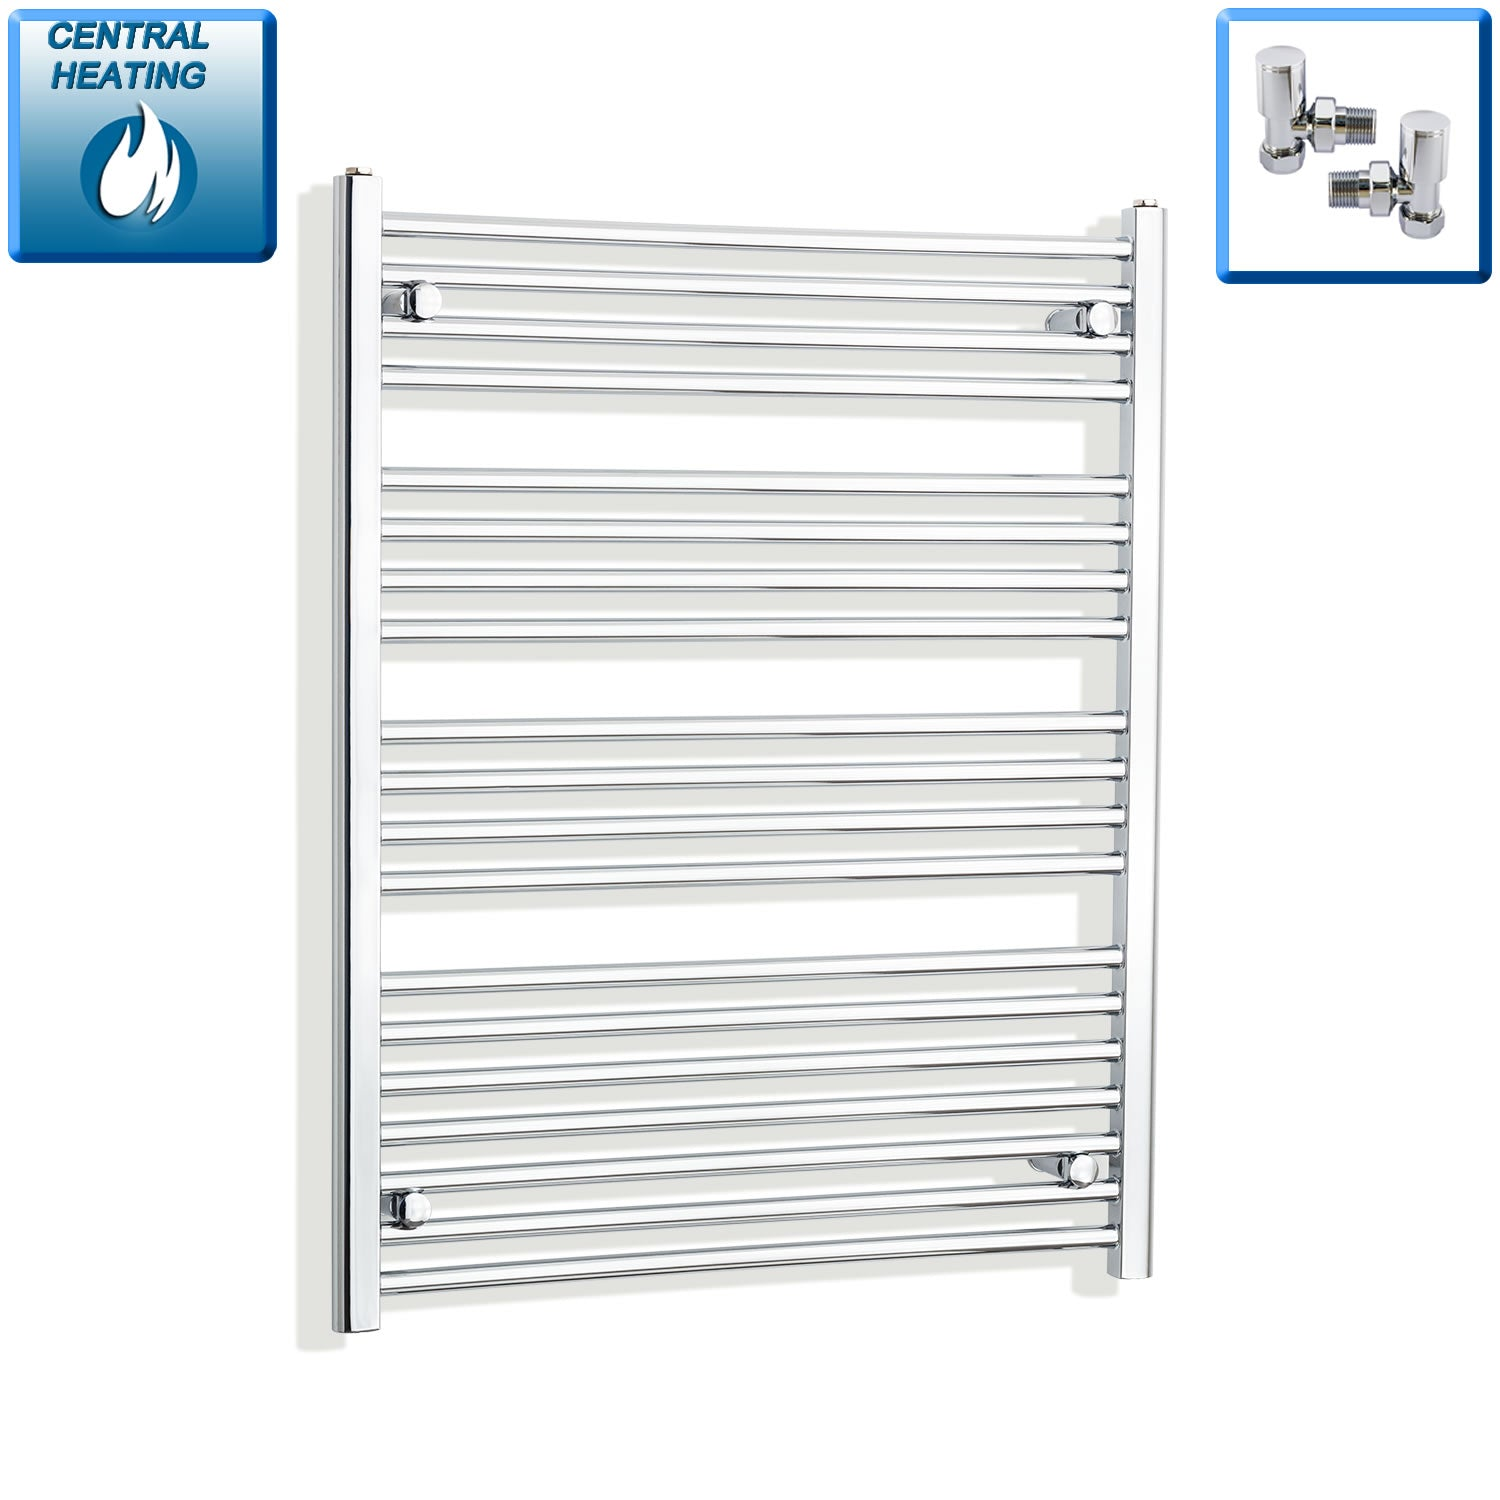 800mm Wide 1000mm High Chrome Towel Rail Radiator With Angled Valve